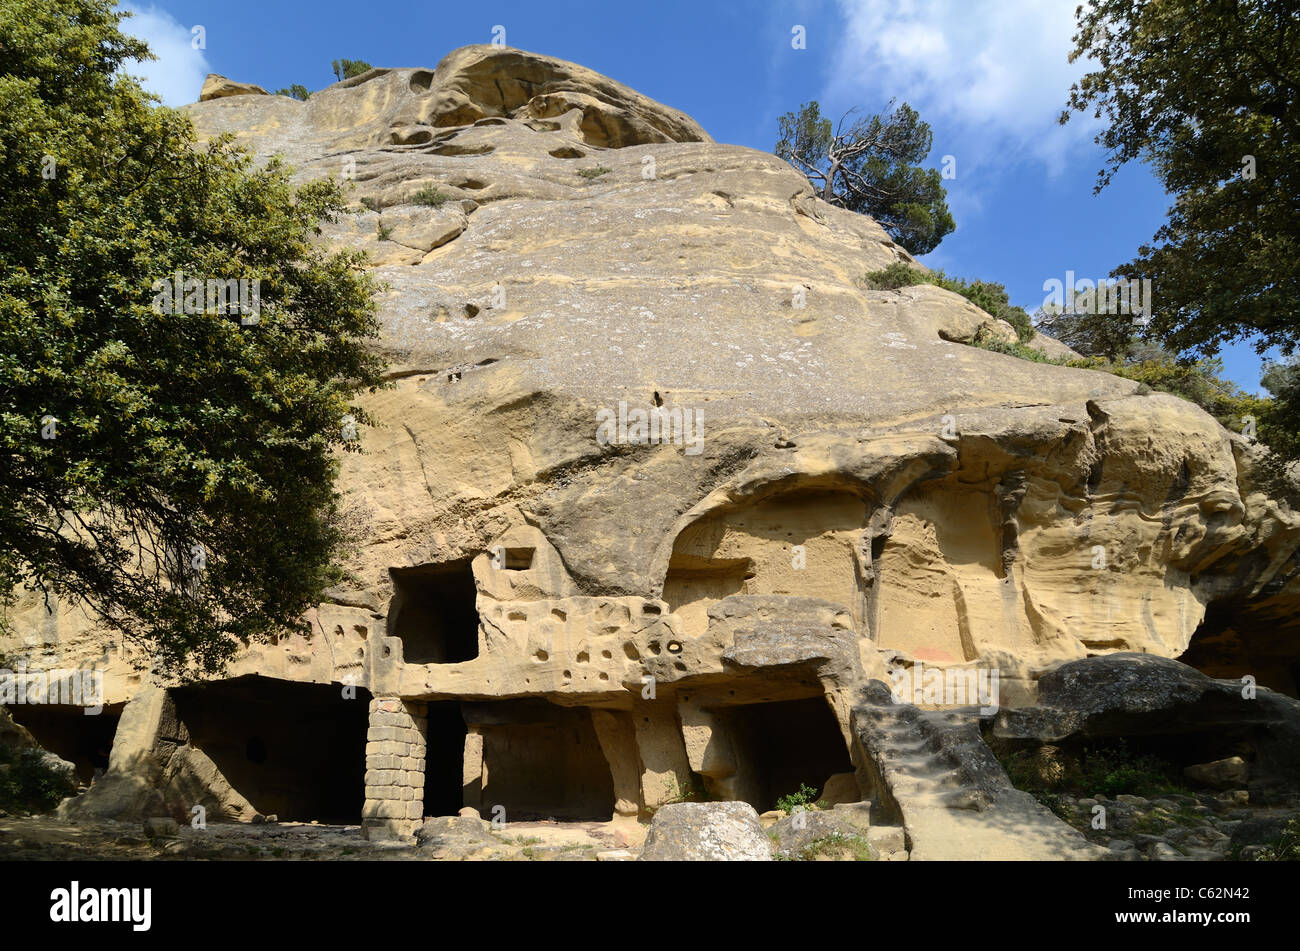 Troglodyte Houses, Cave Houses, or Rock-Cut Dwellings in the Cliff Face at Calès, Lamanon, Provence, France - Stock Image